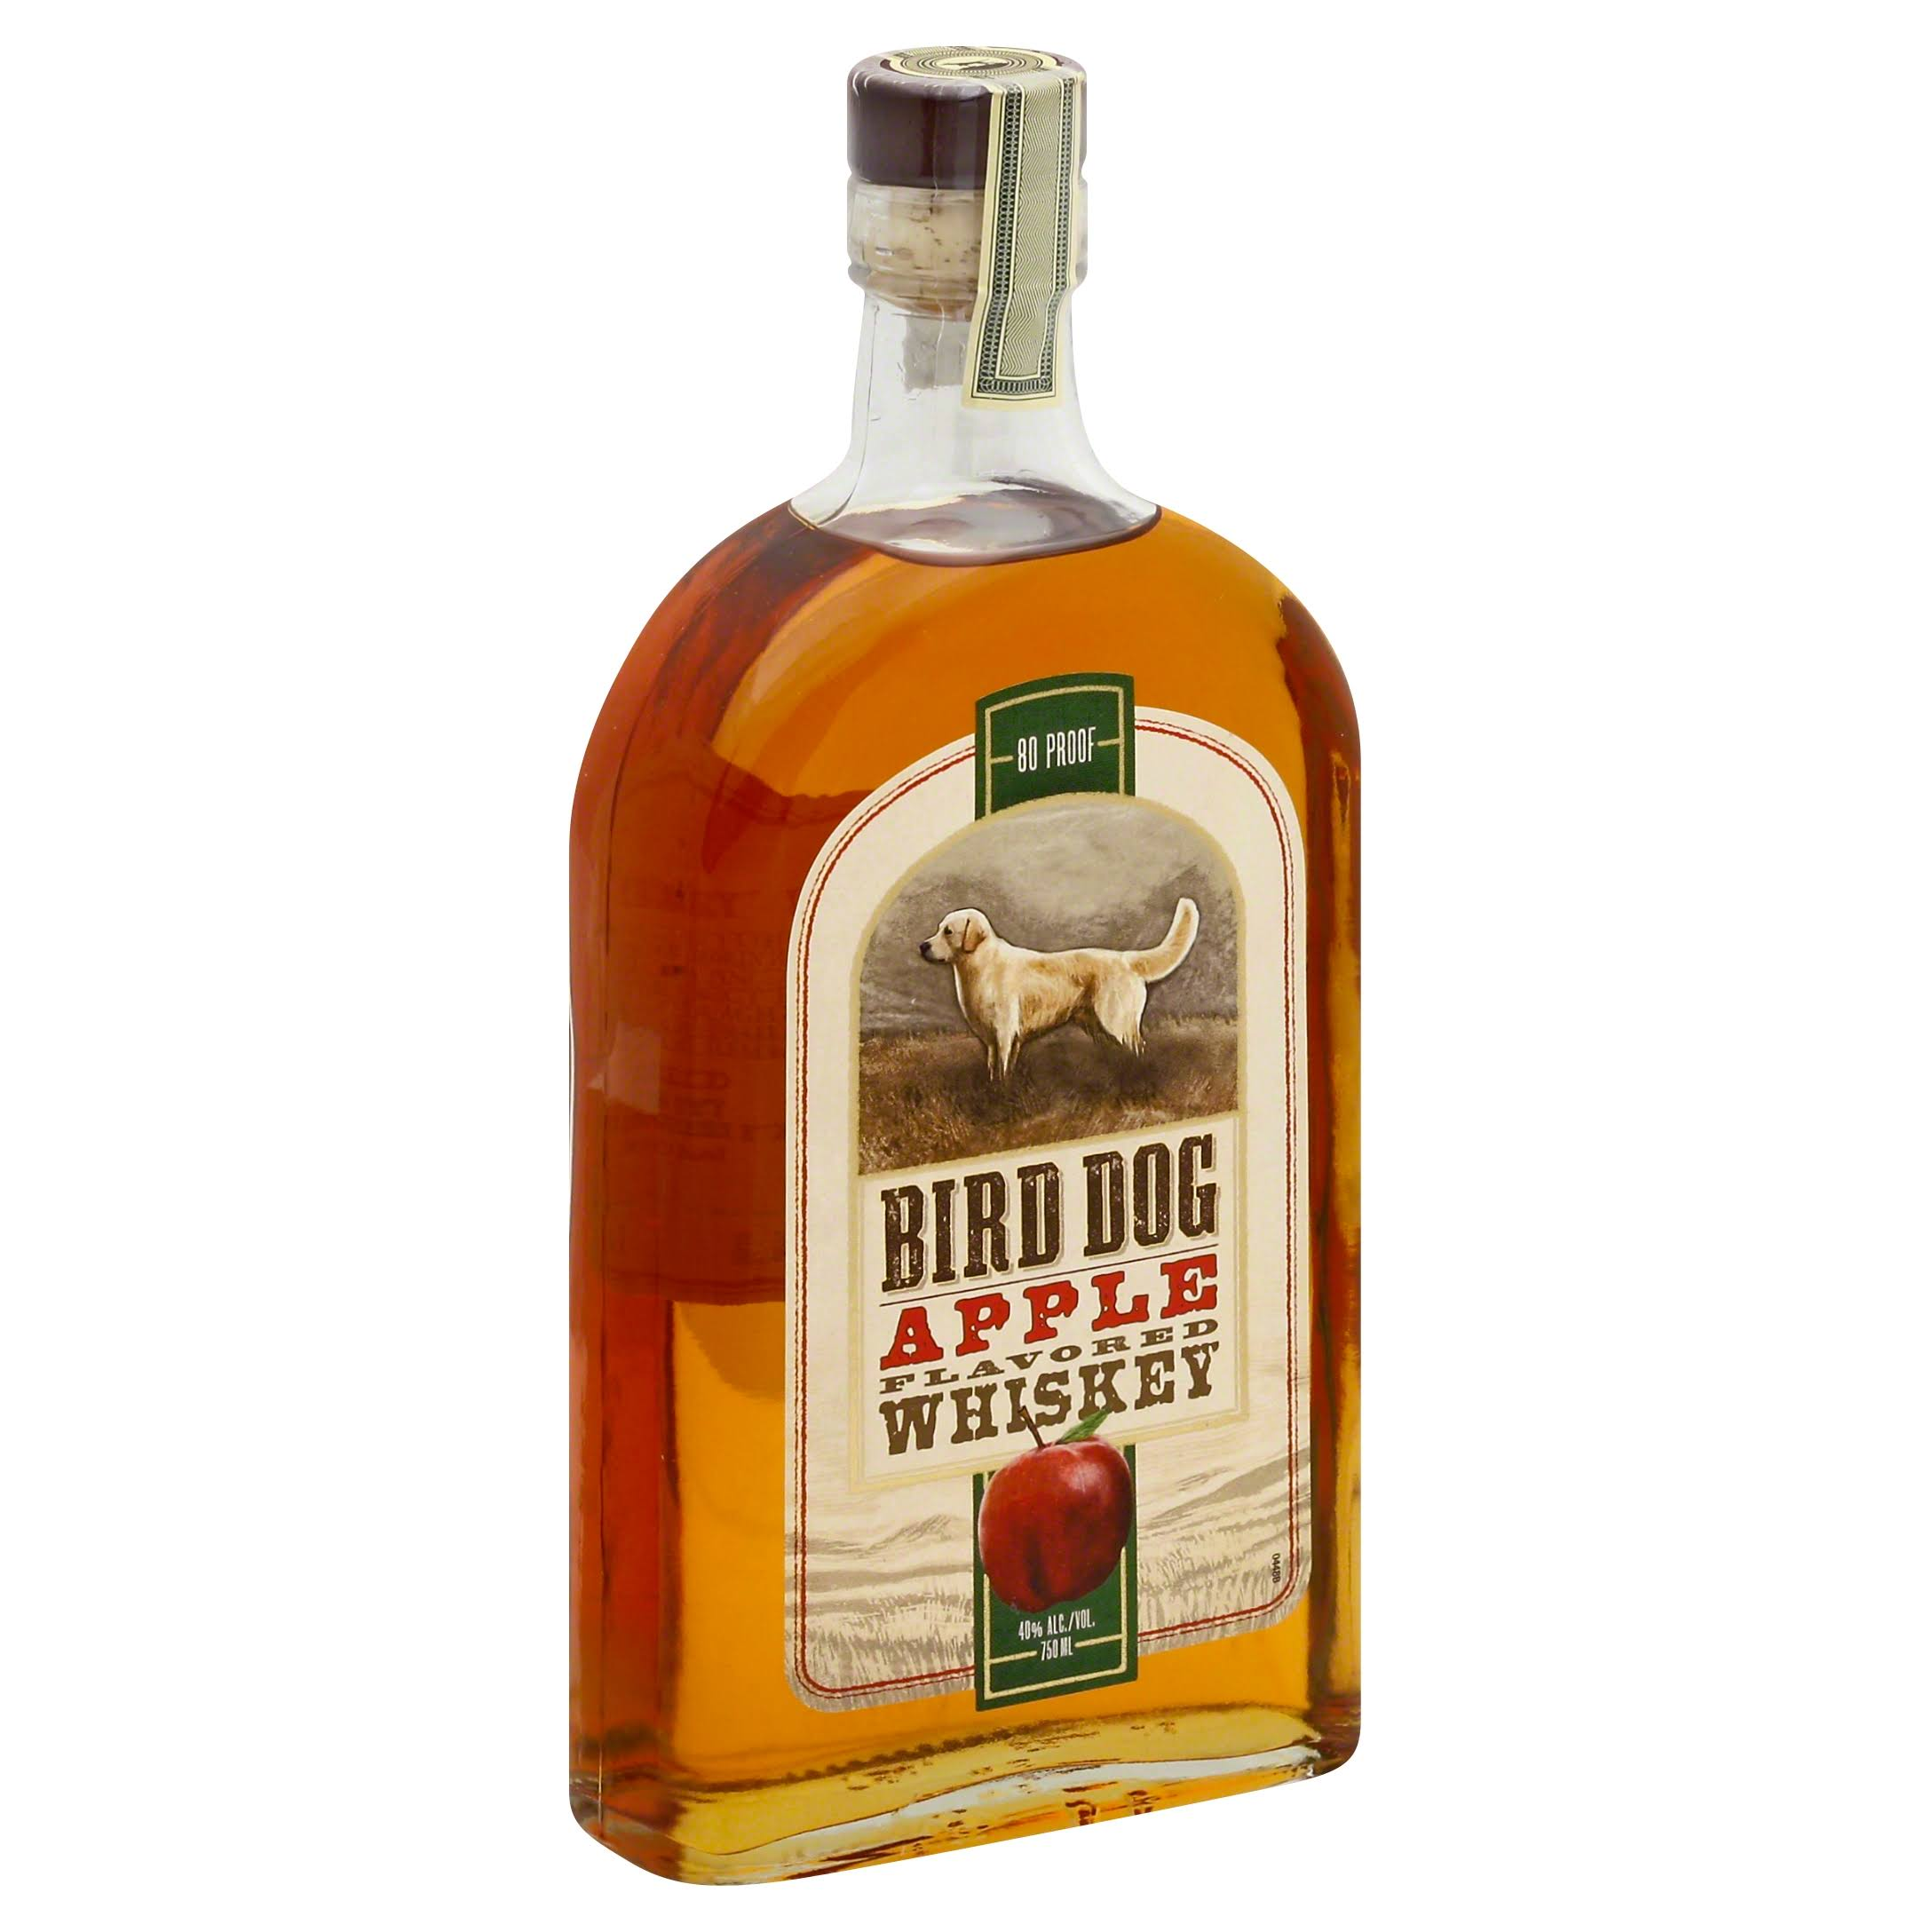 Bird Dog Apple Flavored American Whiskey